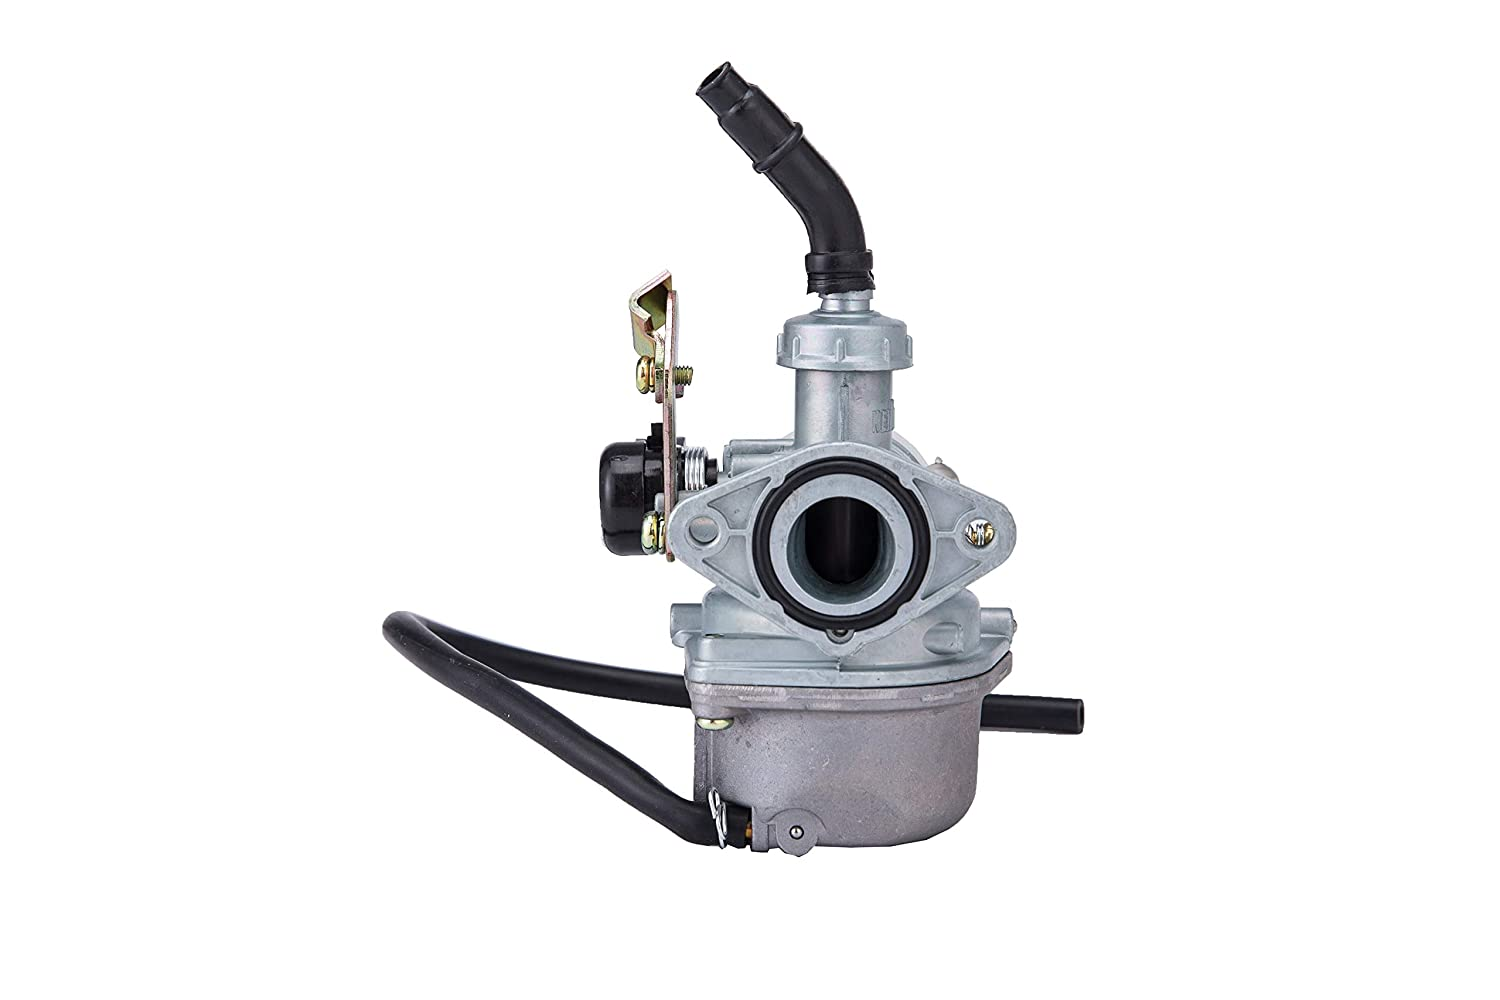 Hity Motor 19mm Cable Choke pz19 Carburetor for 50cc 70cc 80cc 90cc 110cc 125cc ATV Taotao Honda CRF with 35MM Air Filter Fuel Filter Clamp Ring Adjusting Shims and Rubber Ring